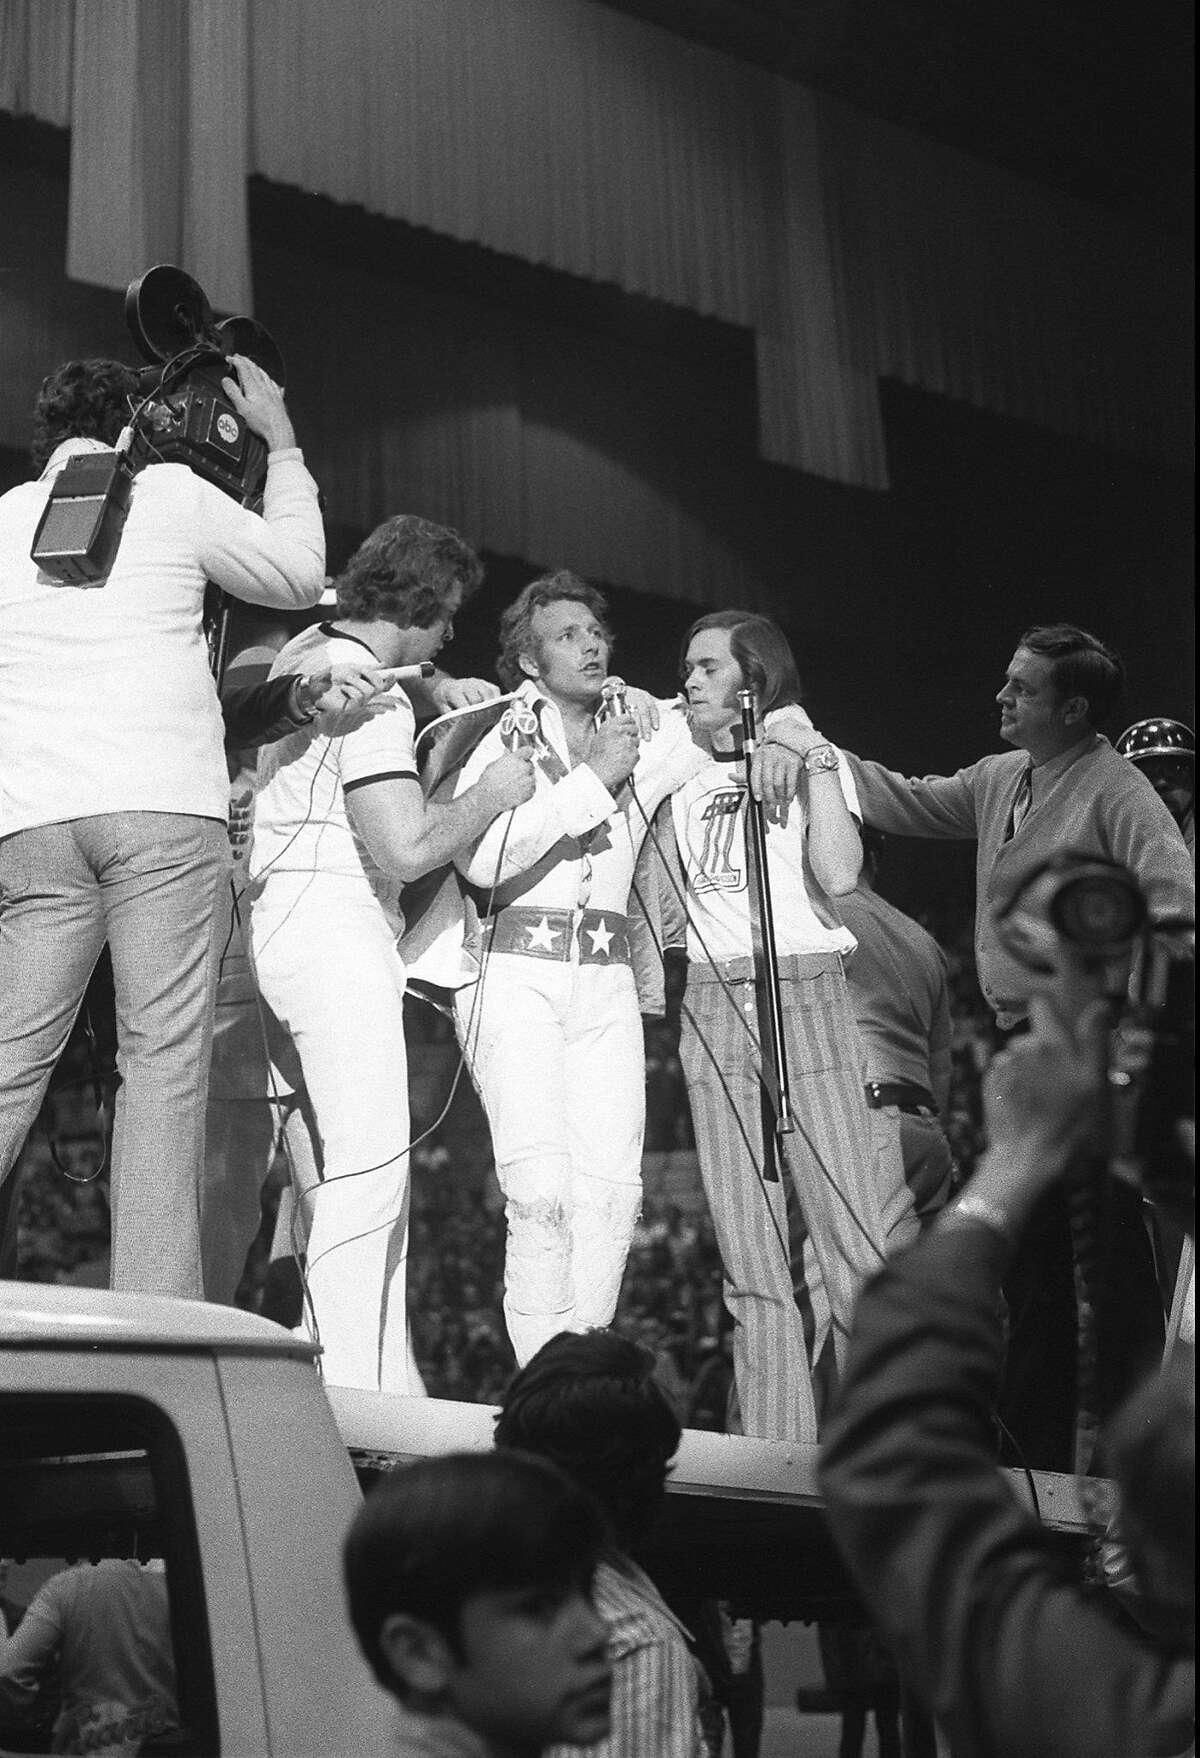 Evel Knievel addresses the crowd at the Cow Palace after making his record jump.